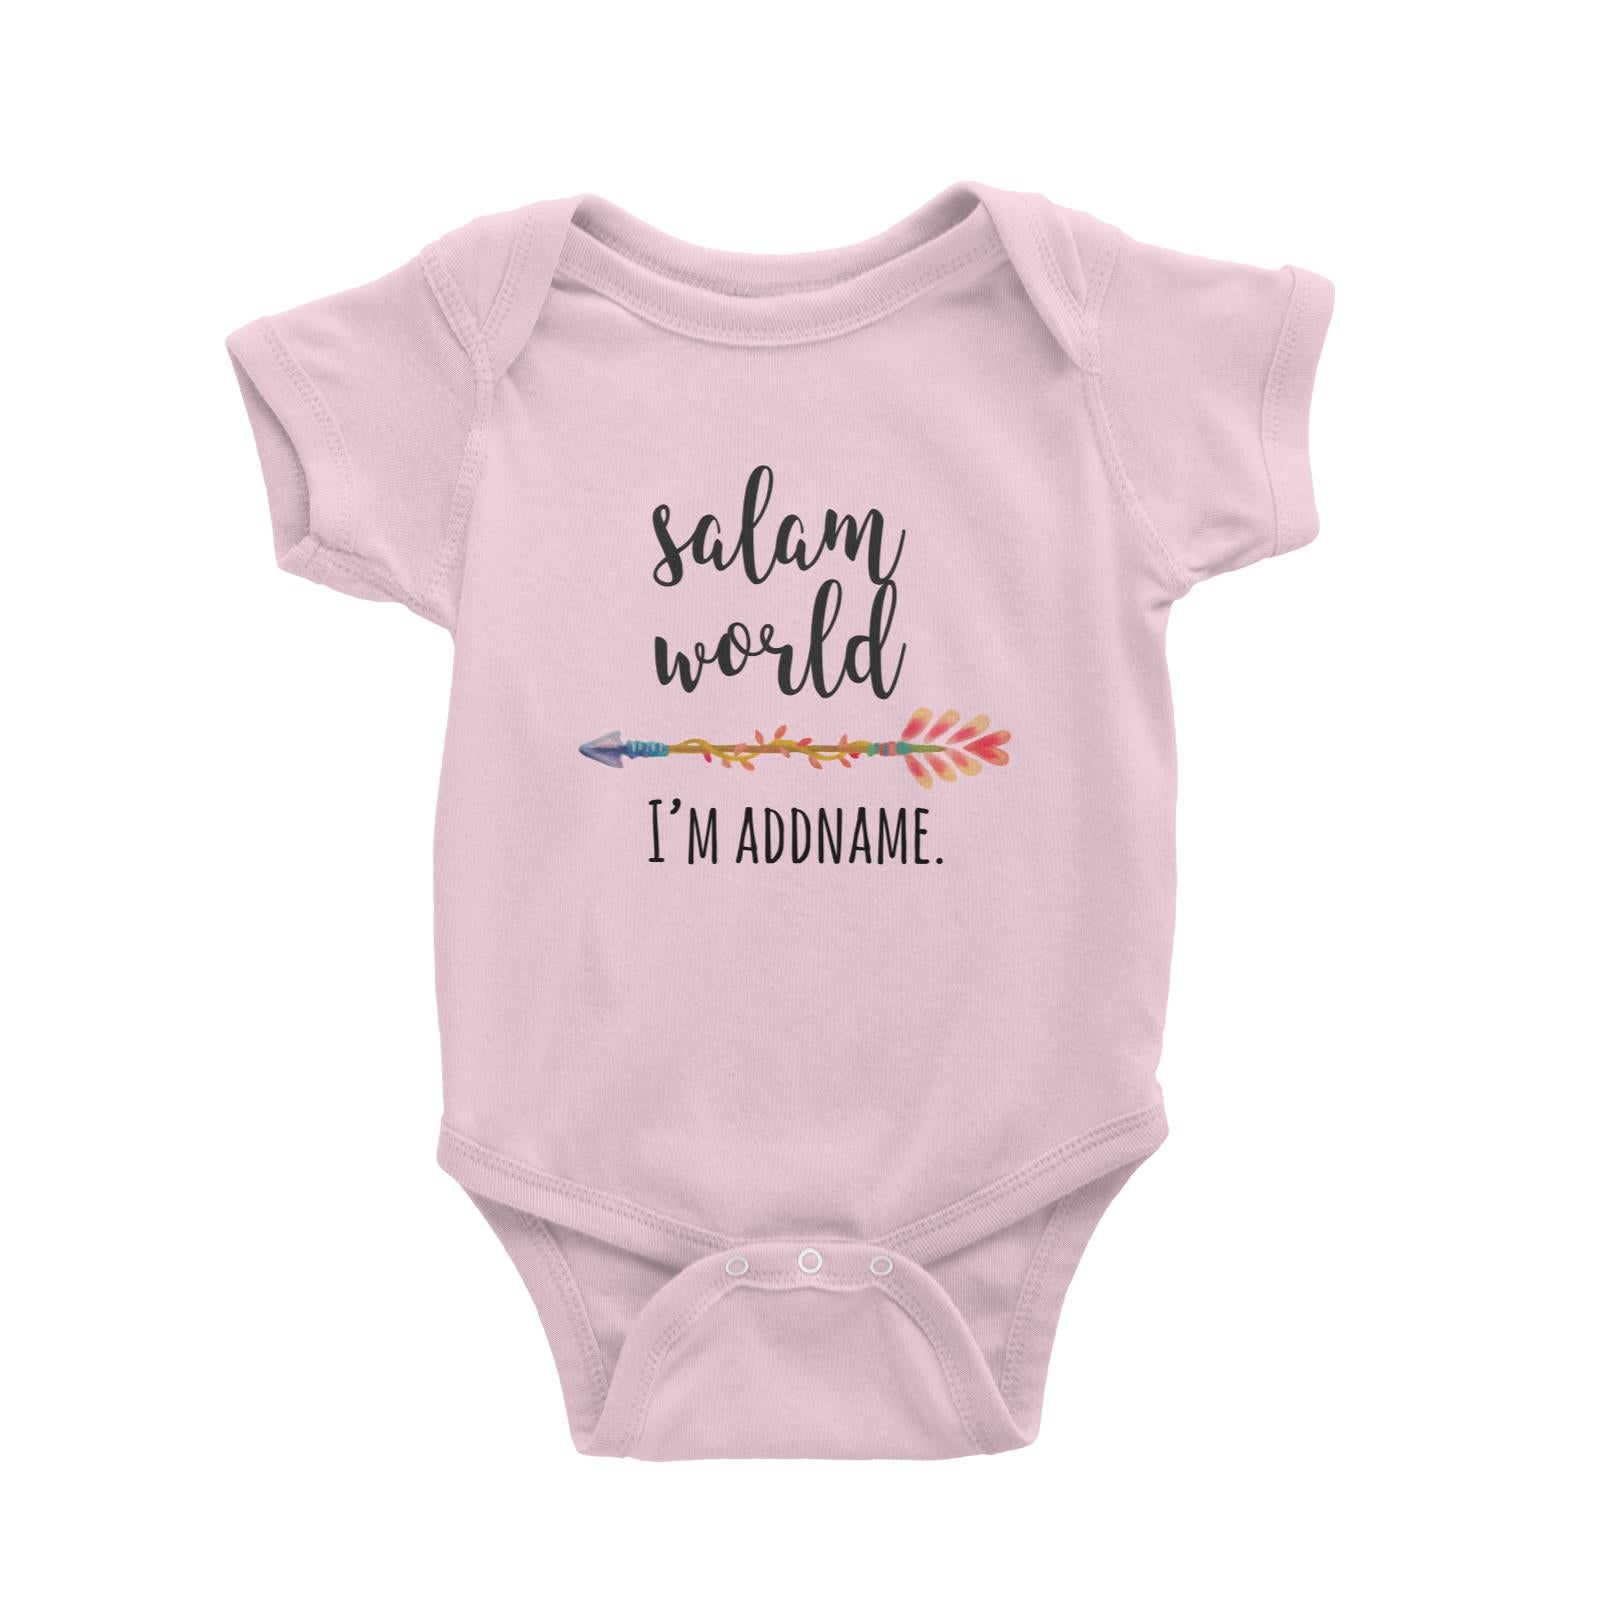 Salam World I'm Addname with Arrow Baby Romper Personalizable Designs Basic Newborn